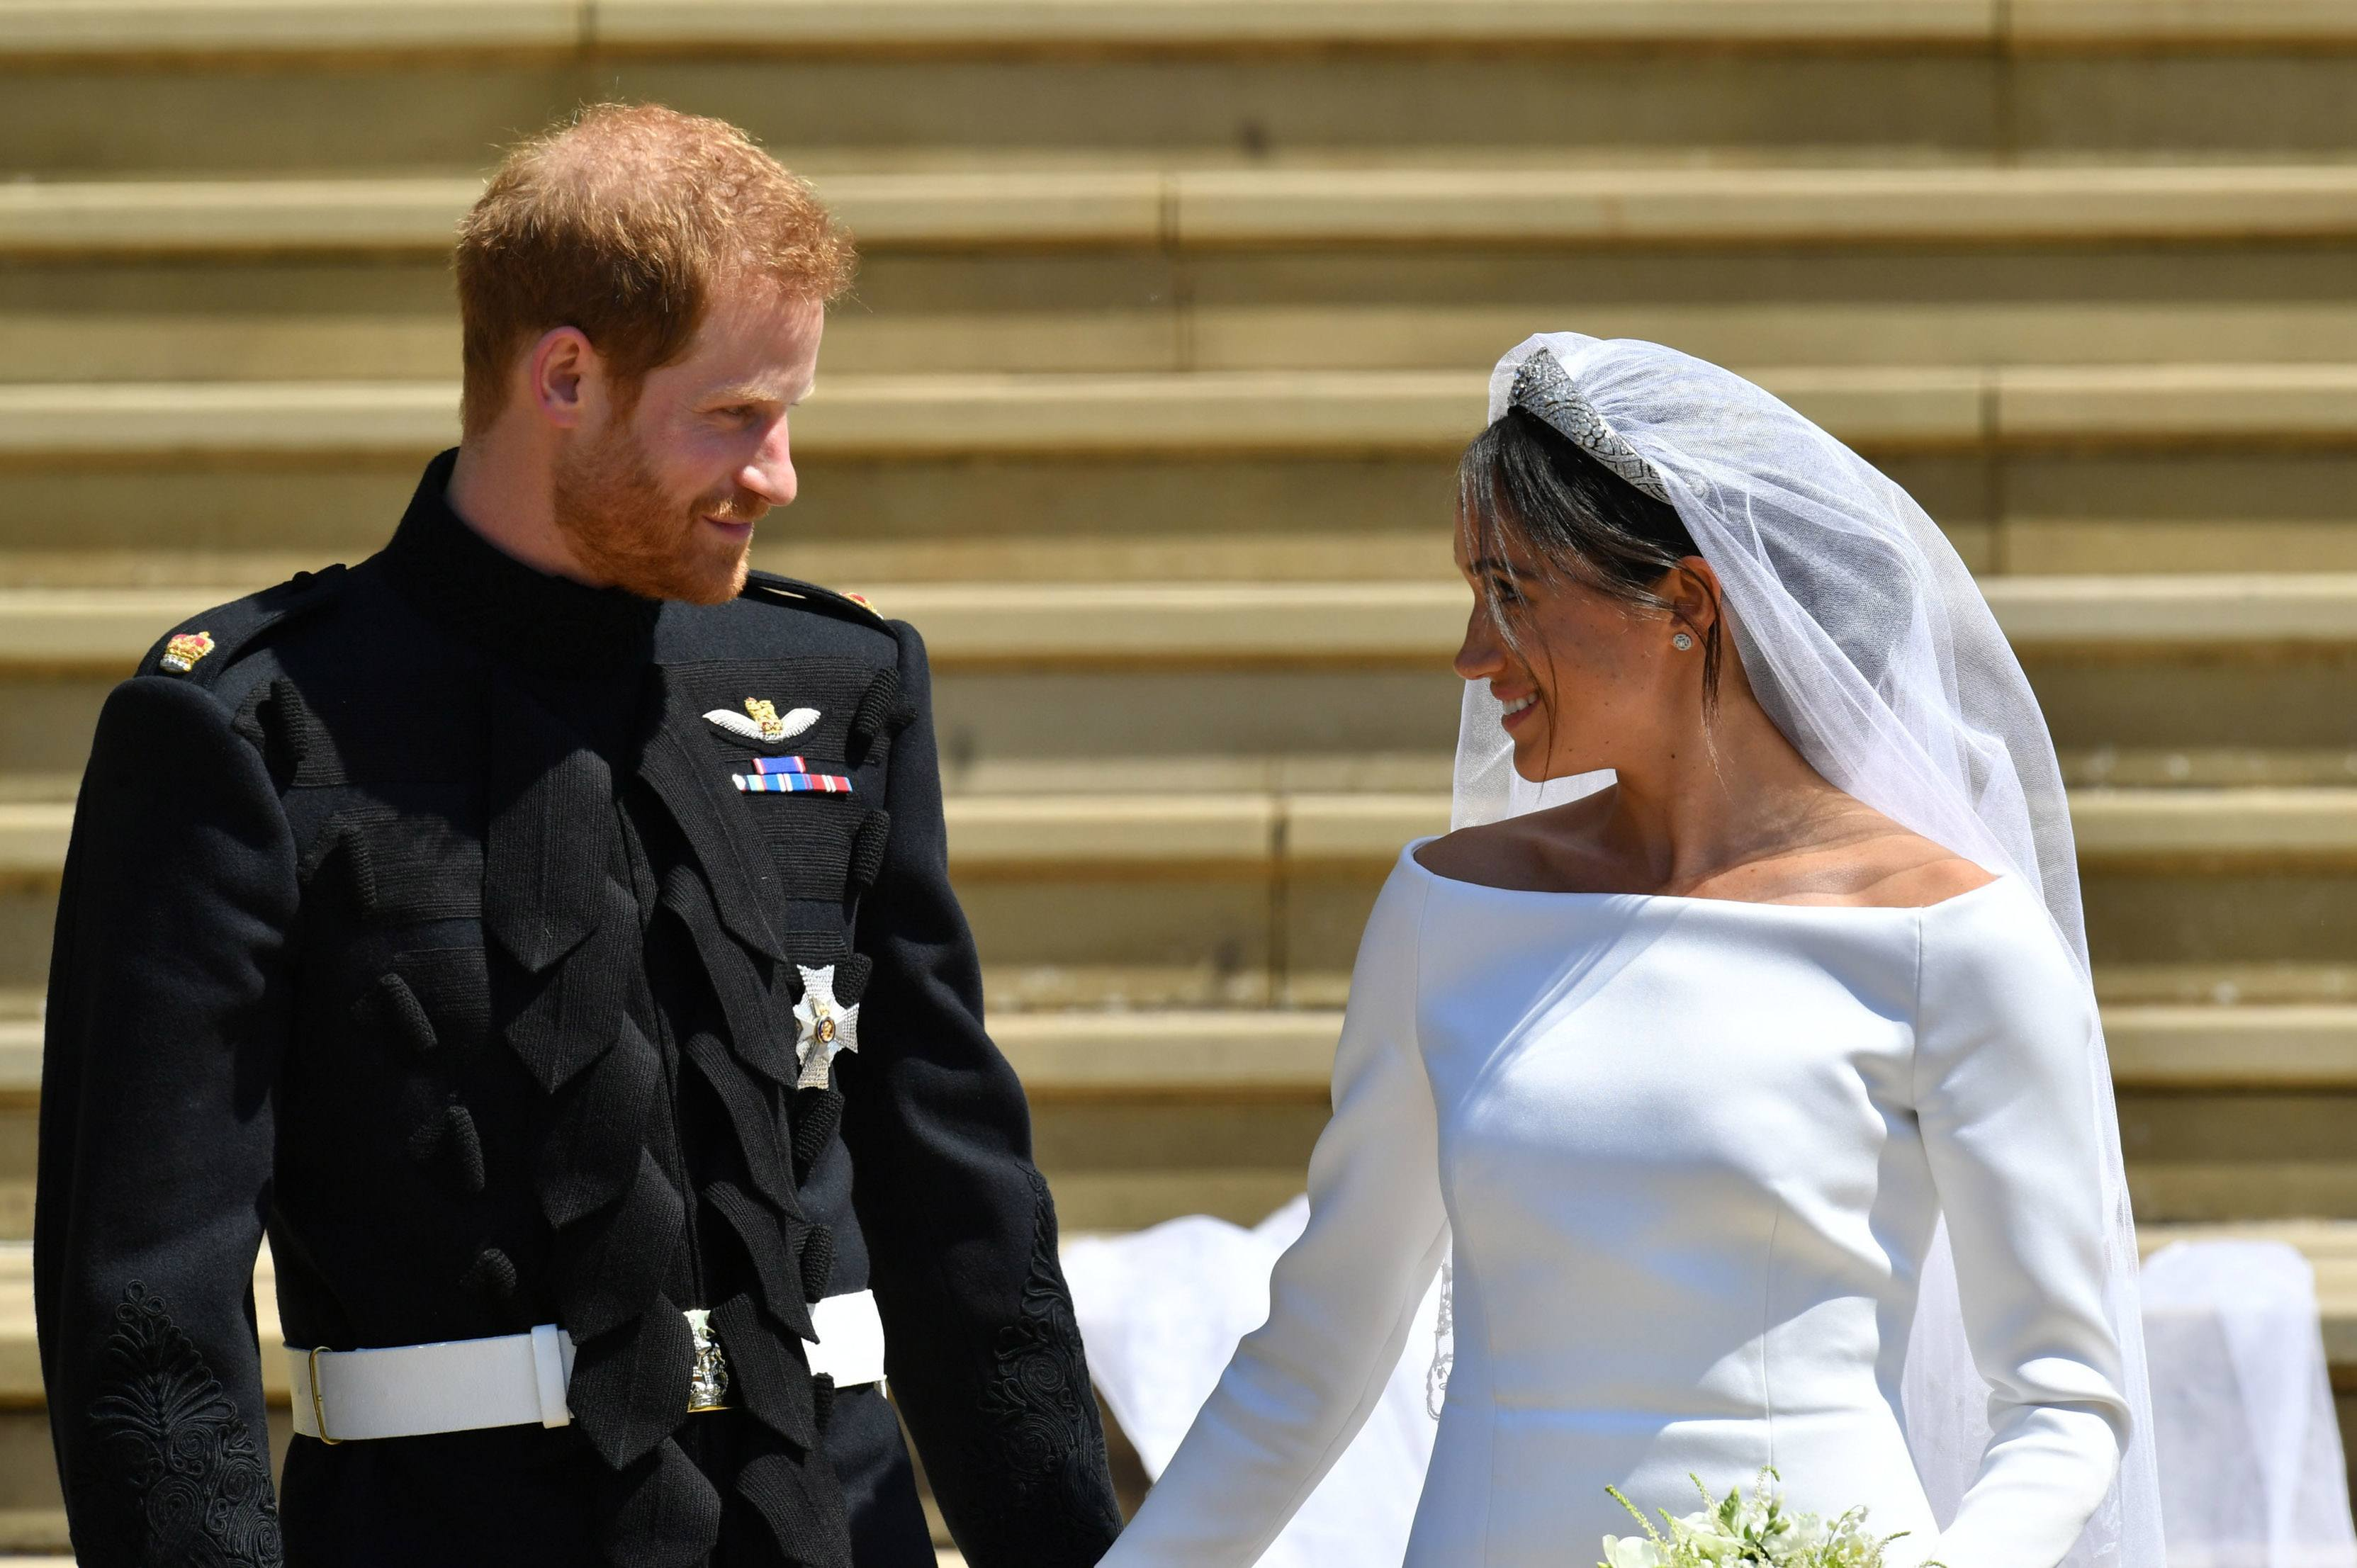 Prince Harry and Meghan Markle on church steps after their wedding